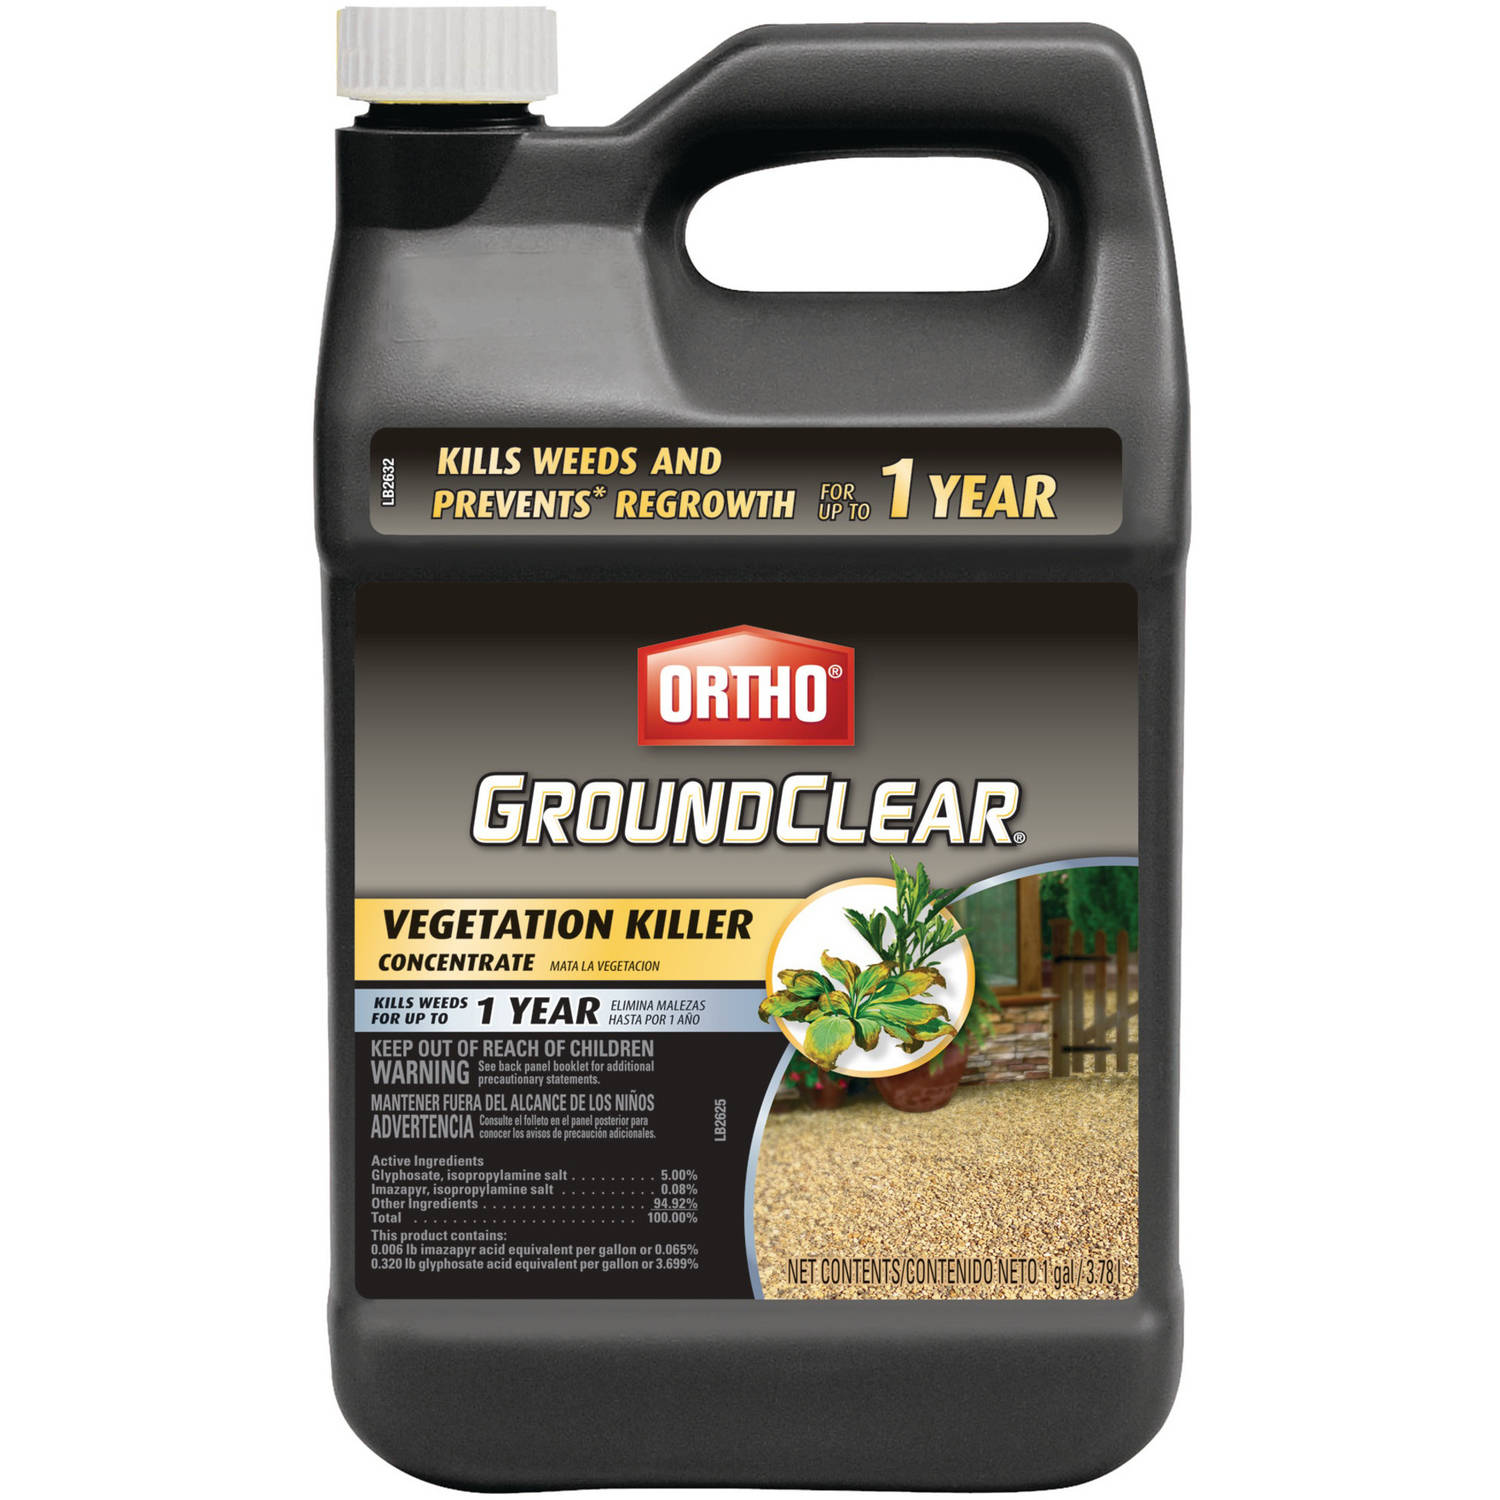 Ortho Groundclear Vegetation Killer Concentrate, 1 gal